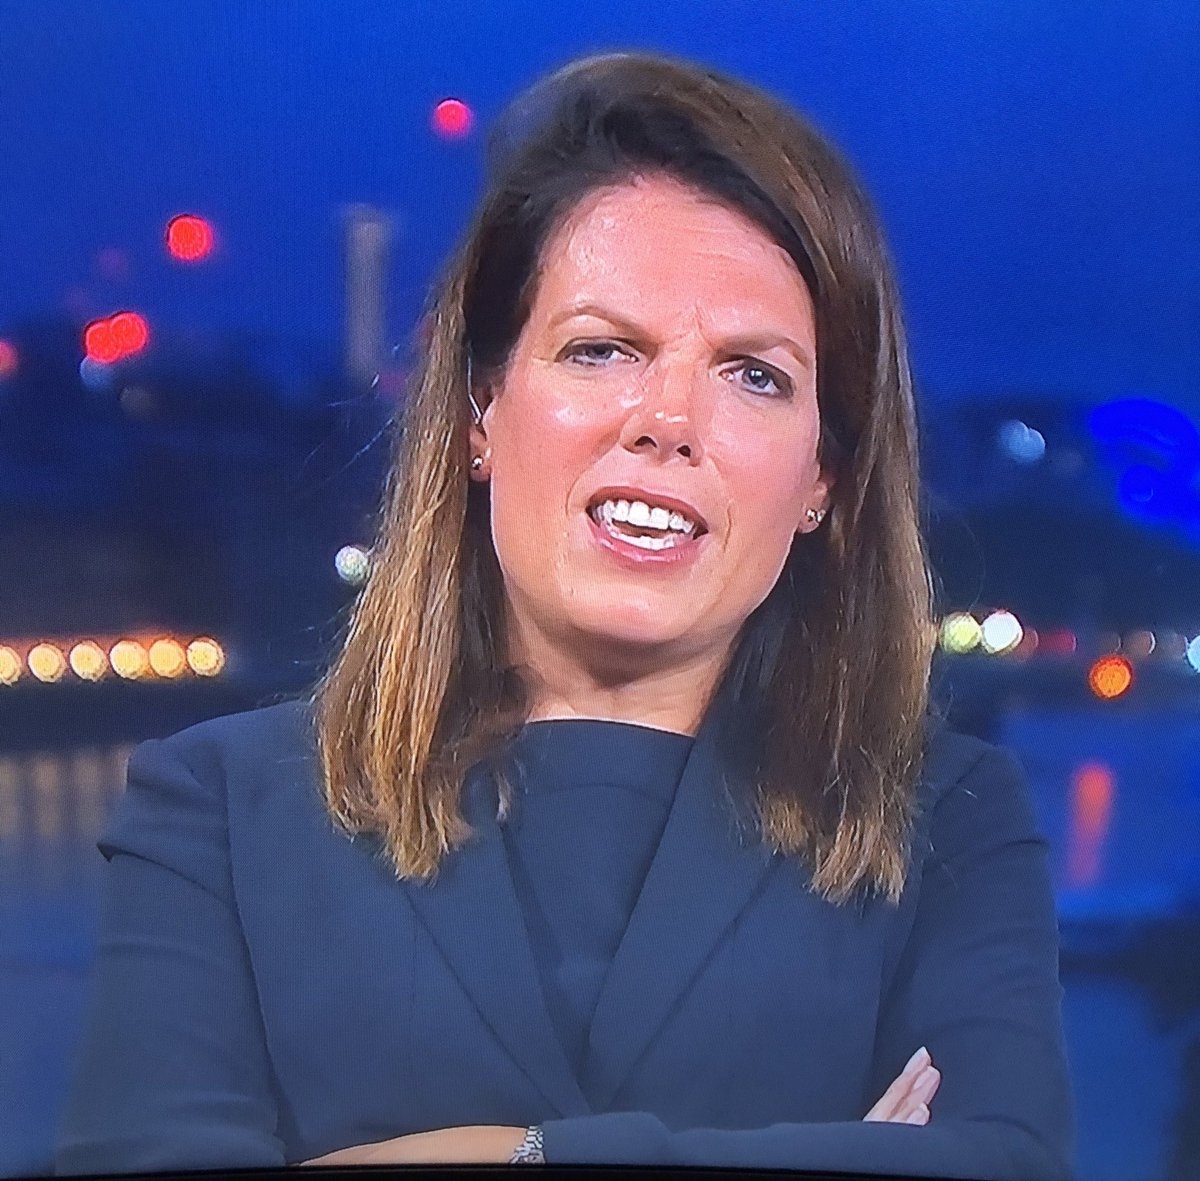 Caroline Nokes with the perpetual *this is all a bit beneath me* posture #Peston #Newsnight